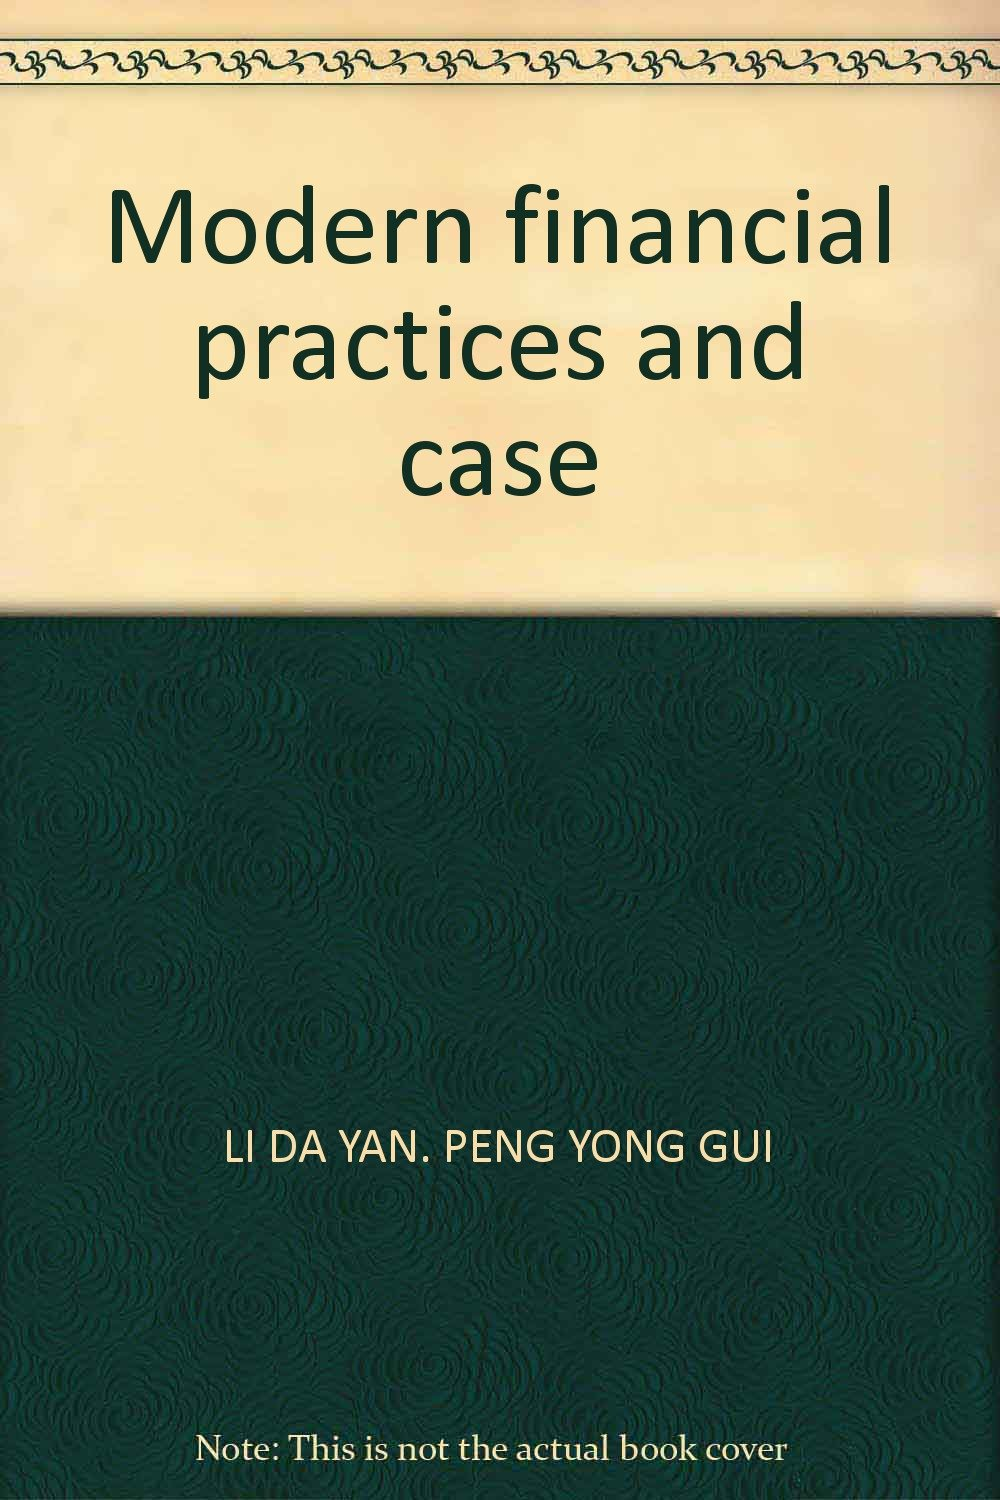 Modern financial practices and case pdf